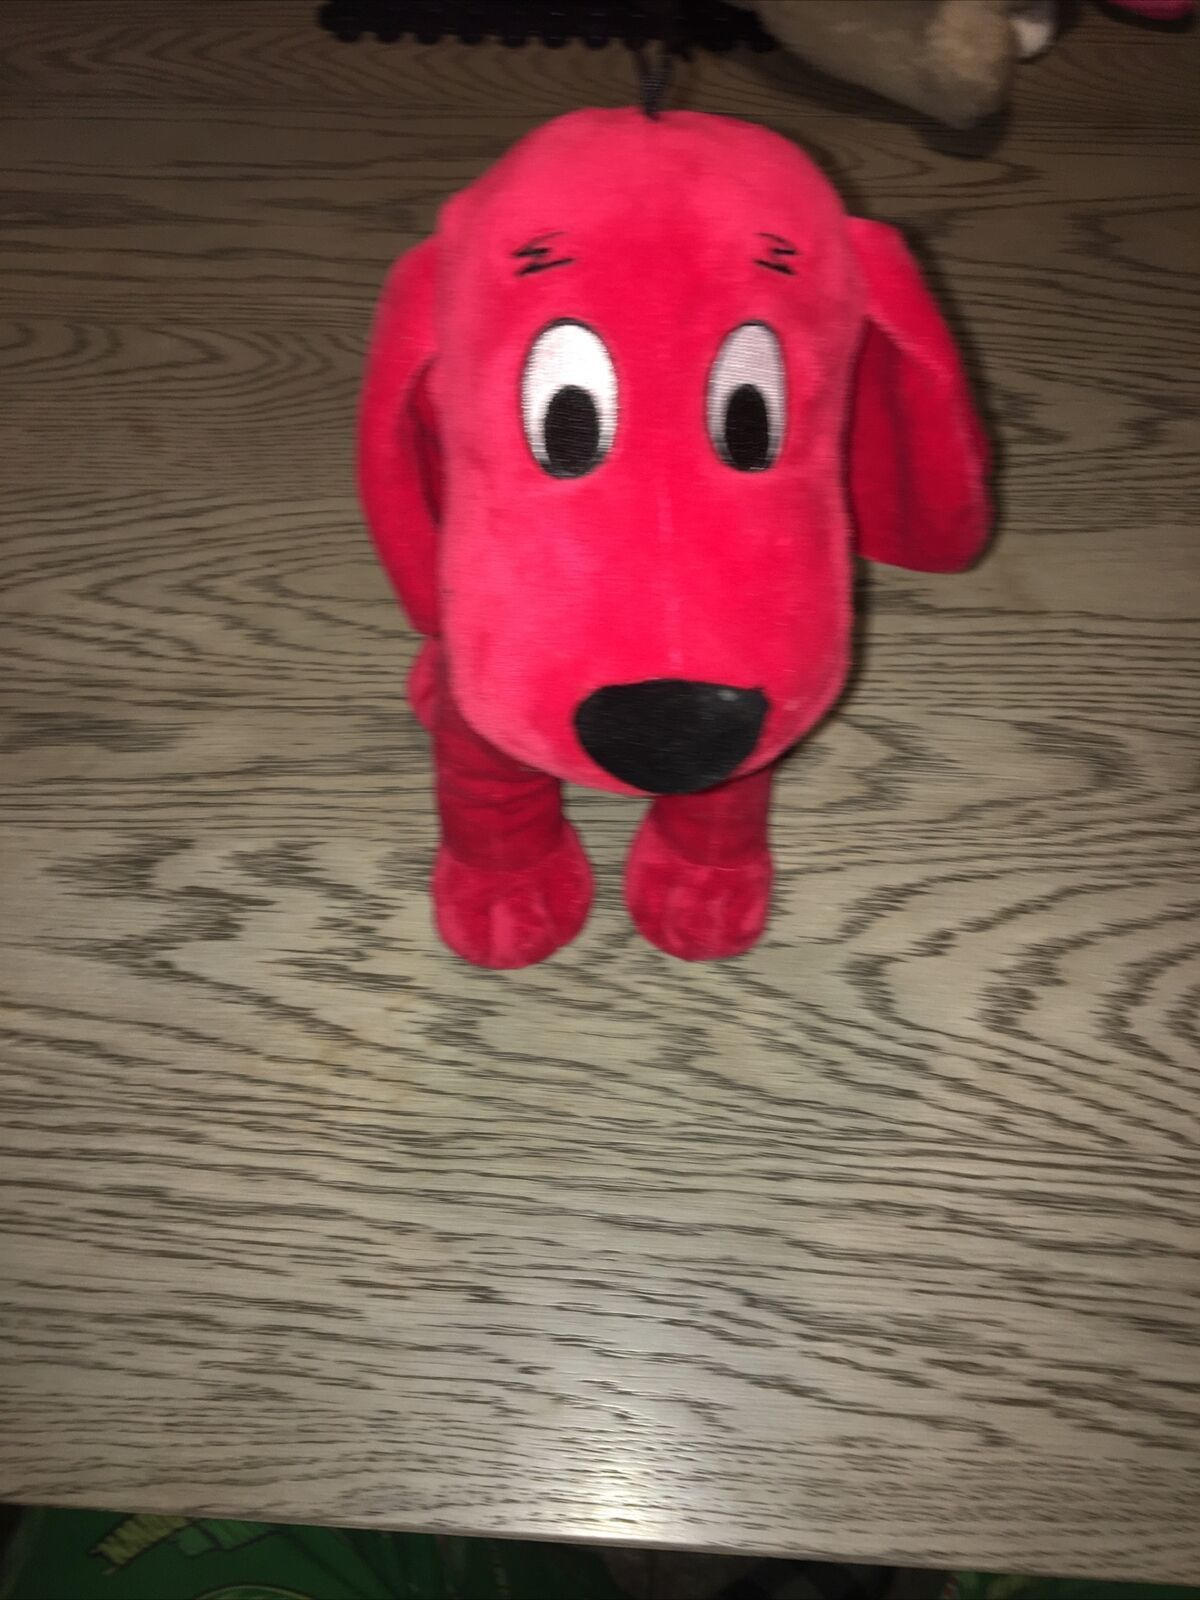 Kohls Cares For Kids Clifford The Big Red Dog  Plush Toy Stuffed Animal - $11.99